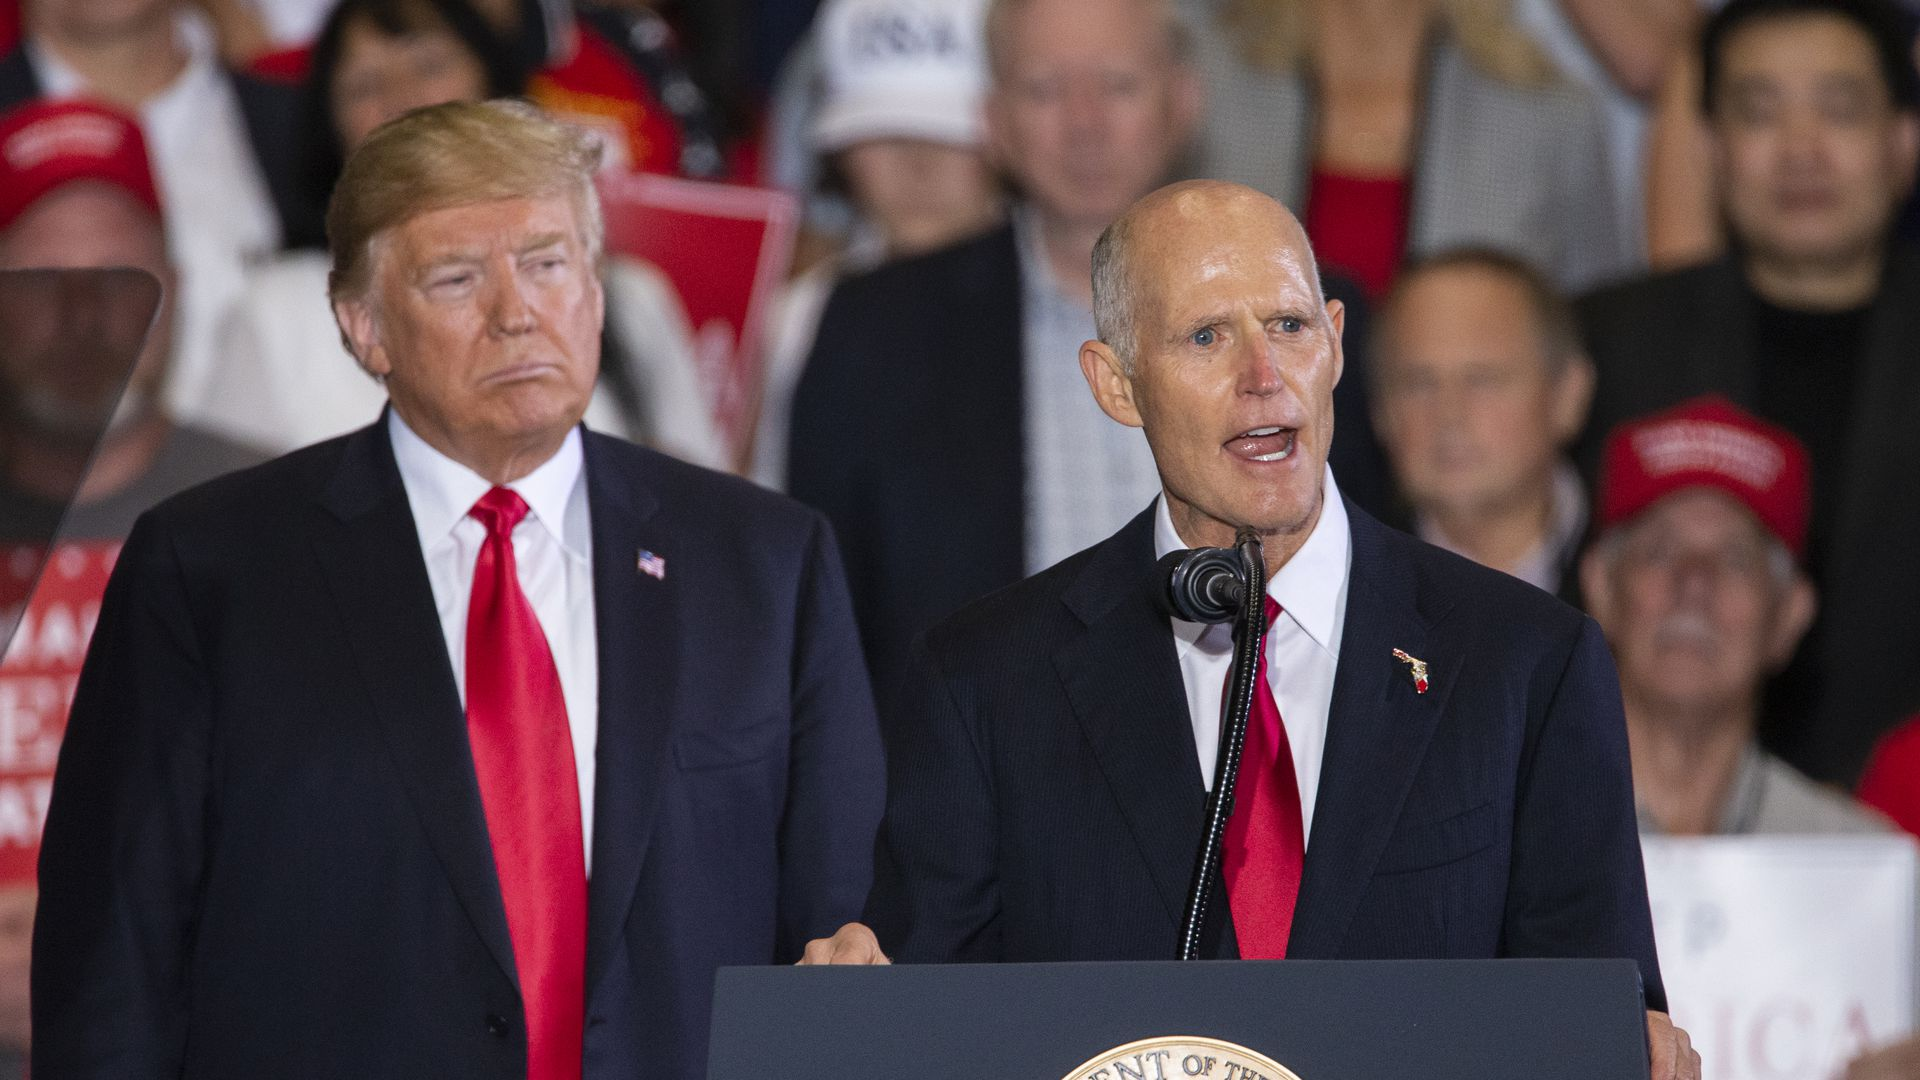 Trump and Rick Scott